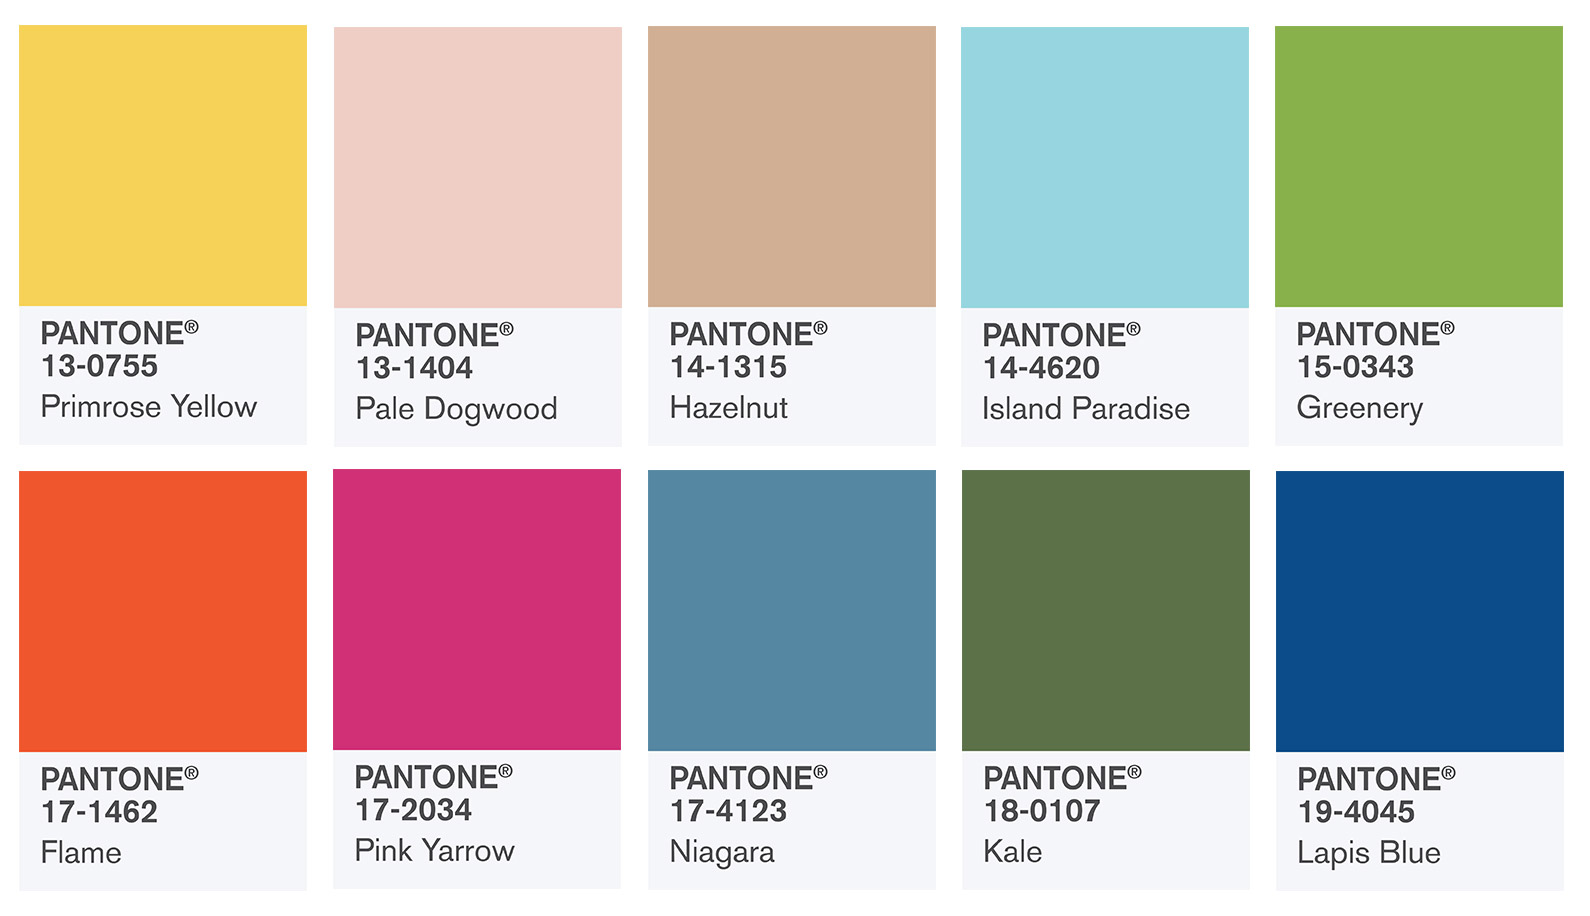 Pantone interior color predictions for 2017